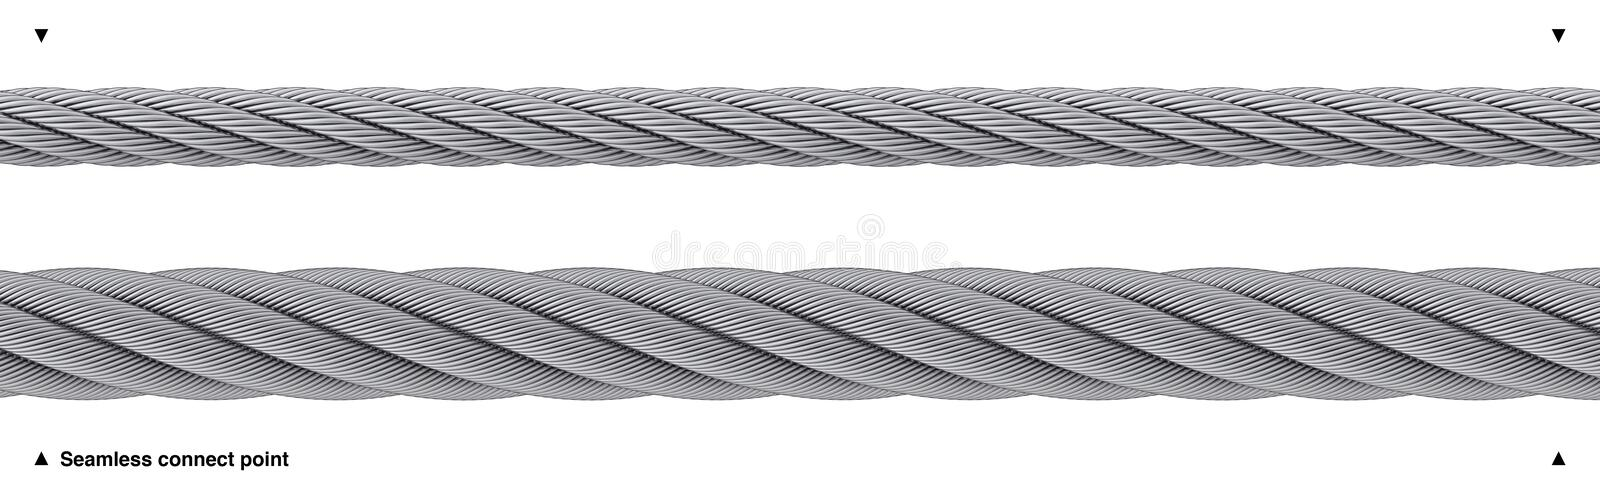 Seamless Wire Rope Heavy Duty Isolated Stock Image - Illustration of ...